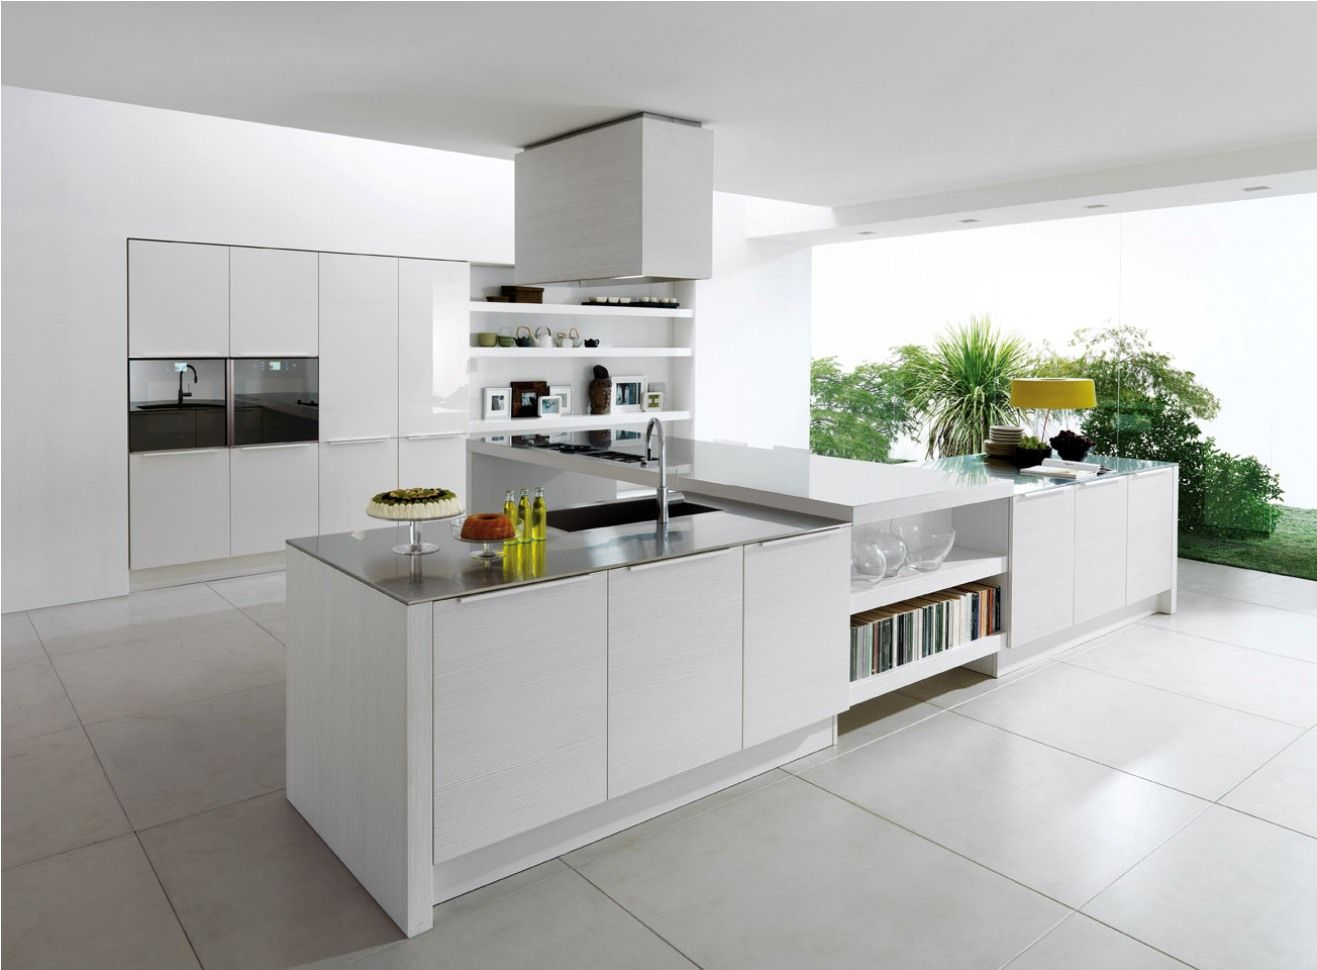 30 contemporary white kitchens ideas modern kitchen designs for Kitchen remodel ideas with white cabinets